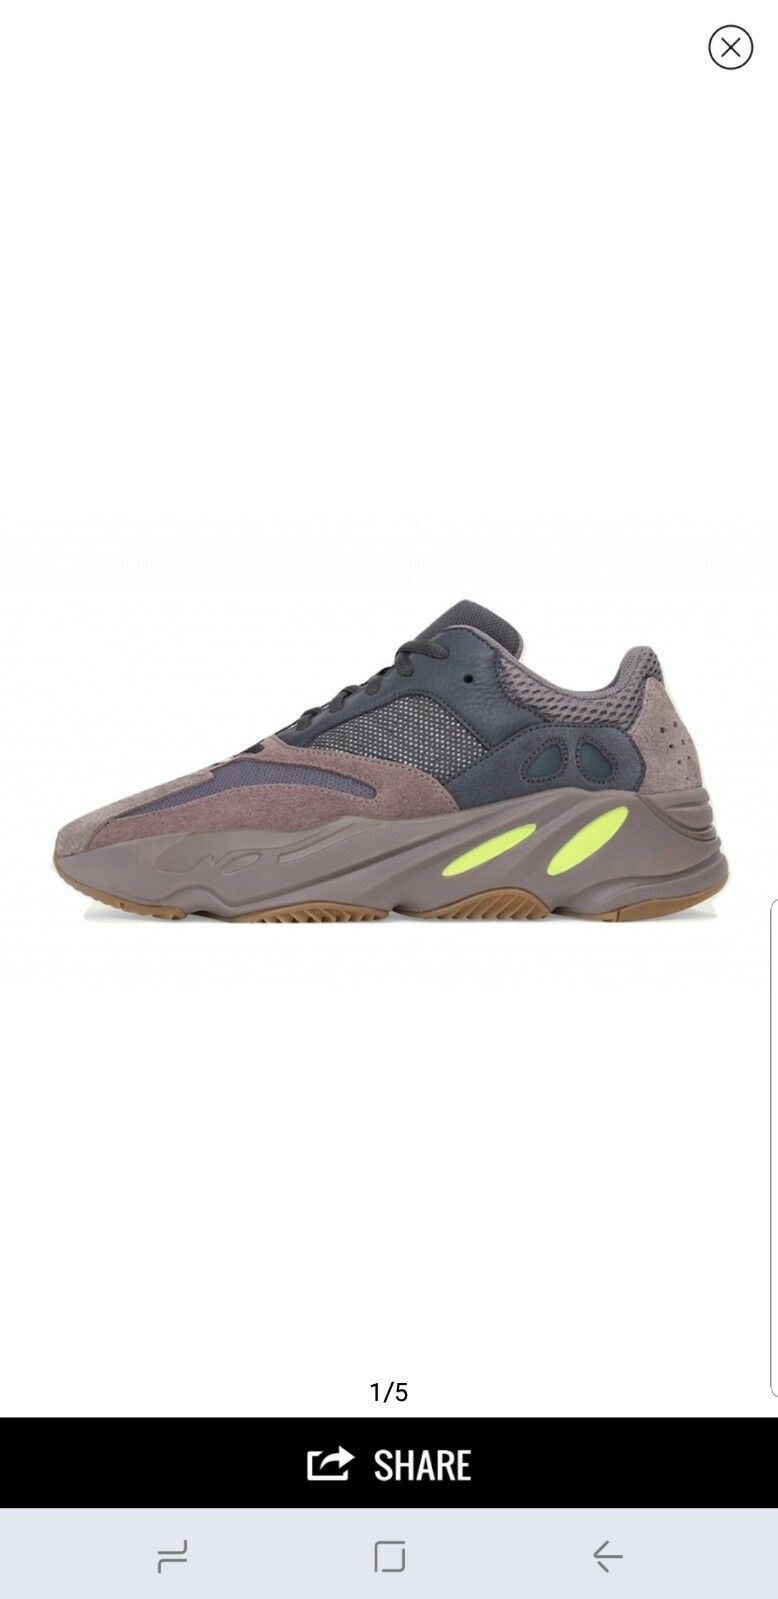 4928aed0f Adidas Yeezy 700 Boost Mauve (Pre-order All Sizes) Sizes) Sizes) 100 ...